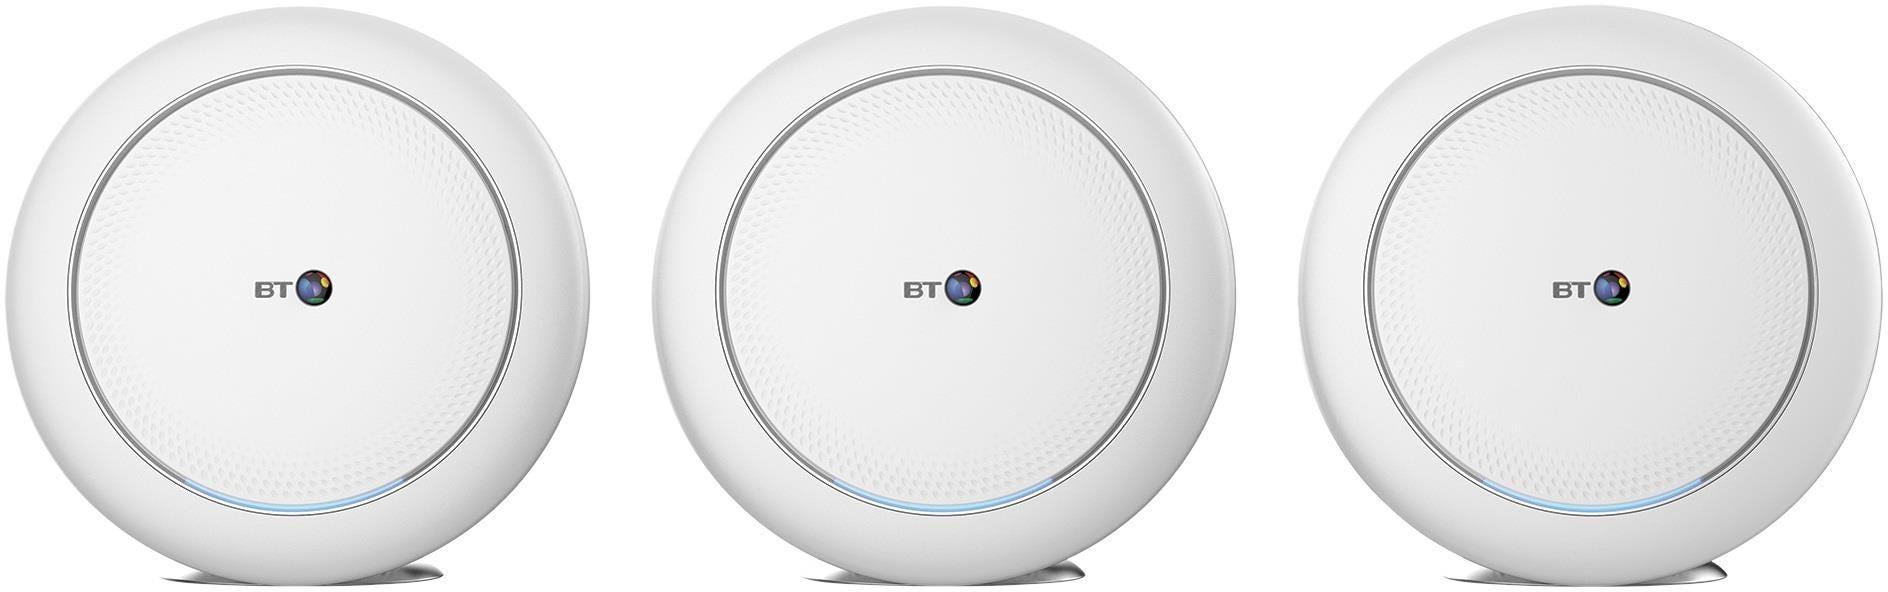 BT Mini Whole Home WiFi System - Triple Pack